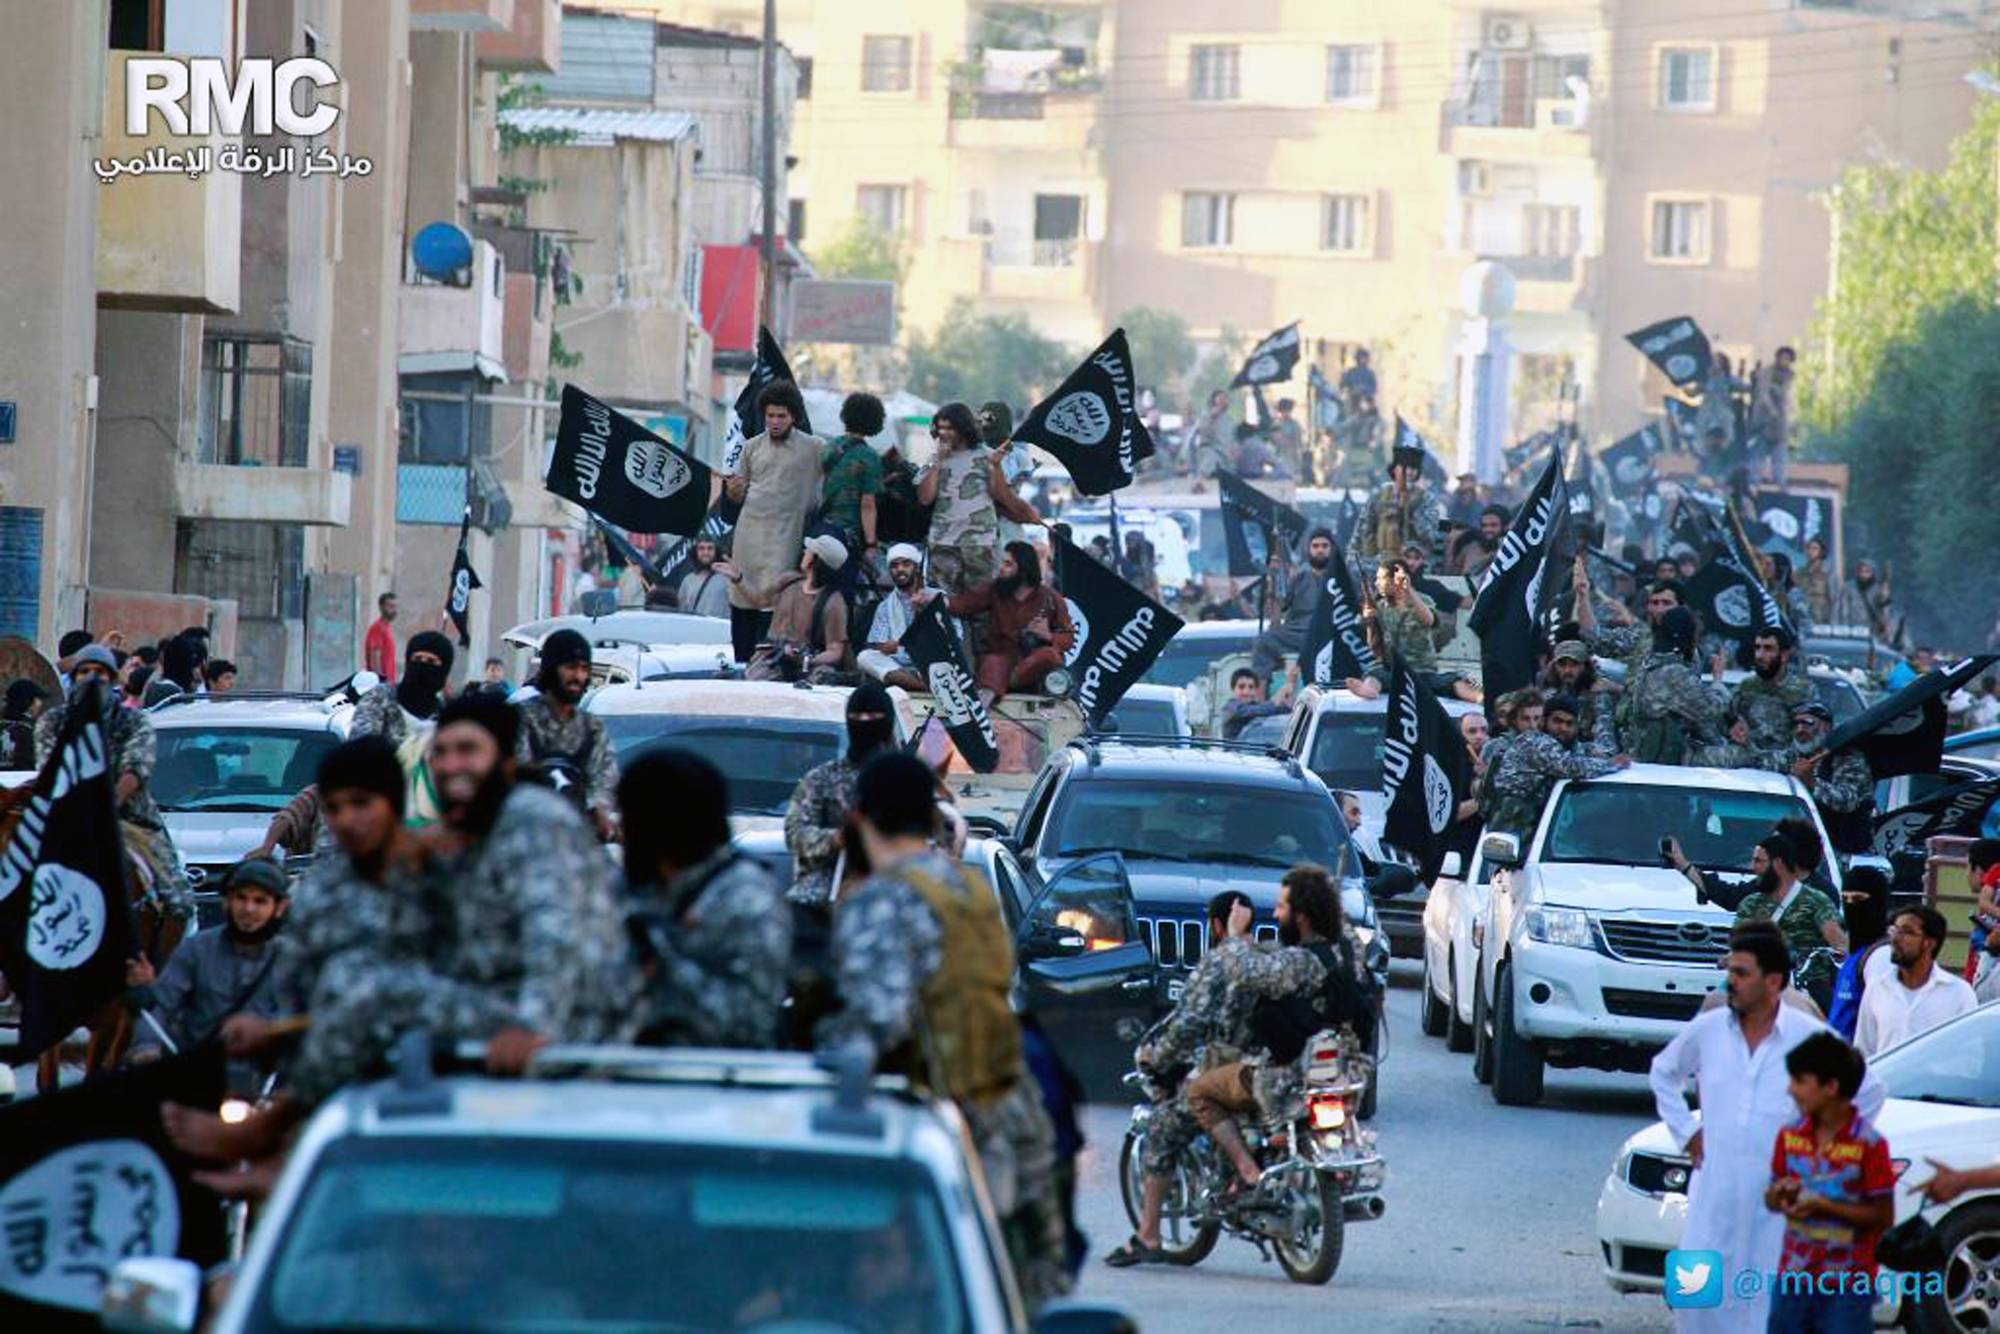 Fighters from extremist Islamic State group celebrate during a parade in Raqqa, Syria. Activists have reported two cases of stoning this month in the Syrian northern province of Raqqa. The first case of stoning occurred in the town of Tabqa. A day after the July 17 stoning of Shamseh Mohammed Abdullah, 26, Faddah al-Sayed Ahmad was stoned to death in the provincial capital of Raqqa.